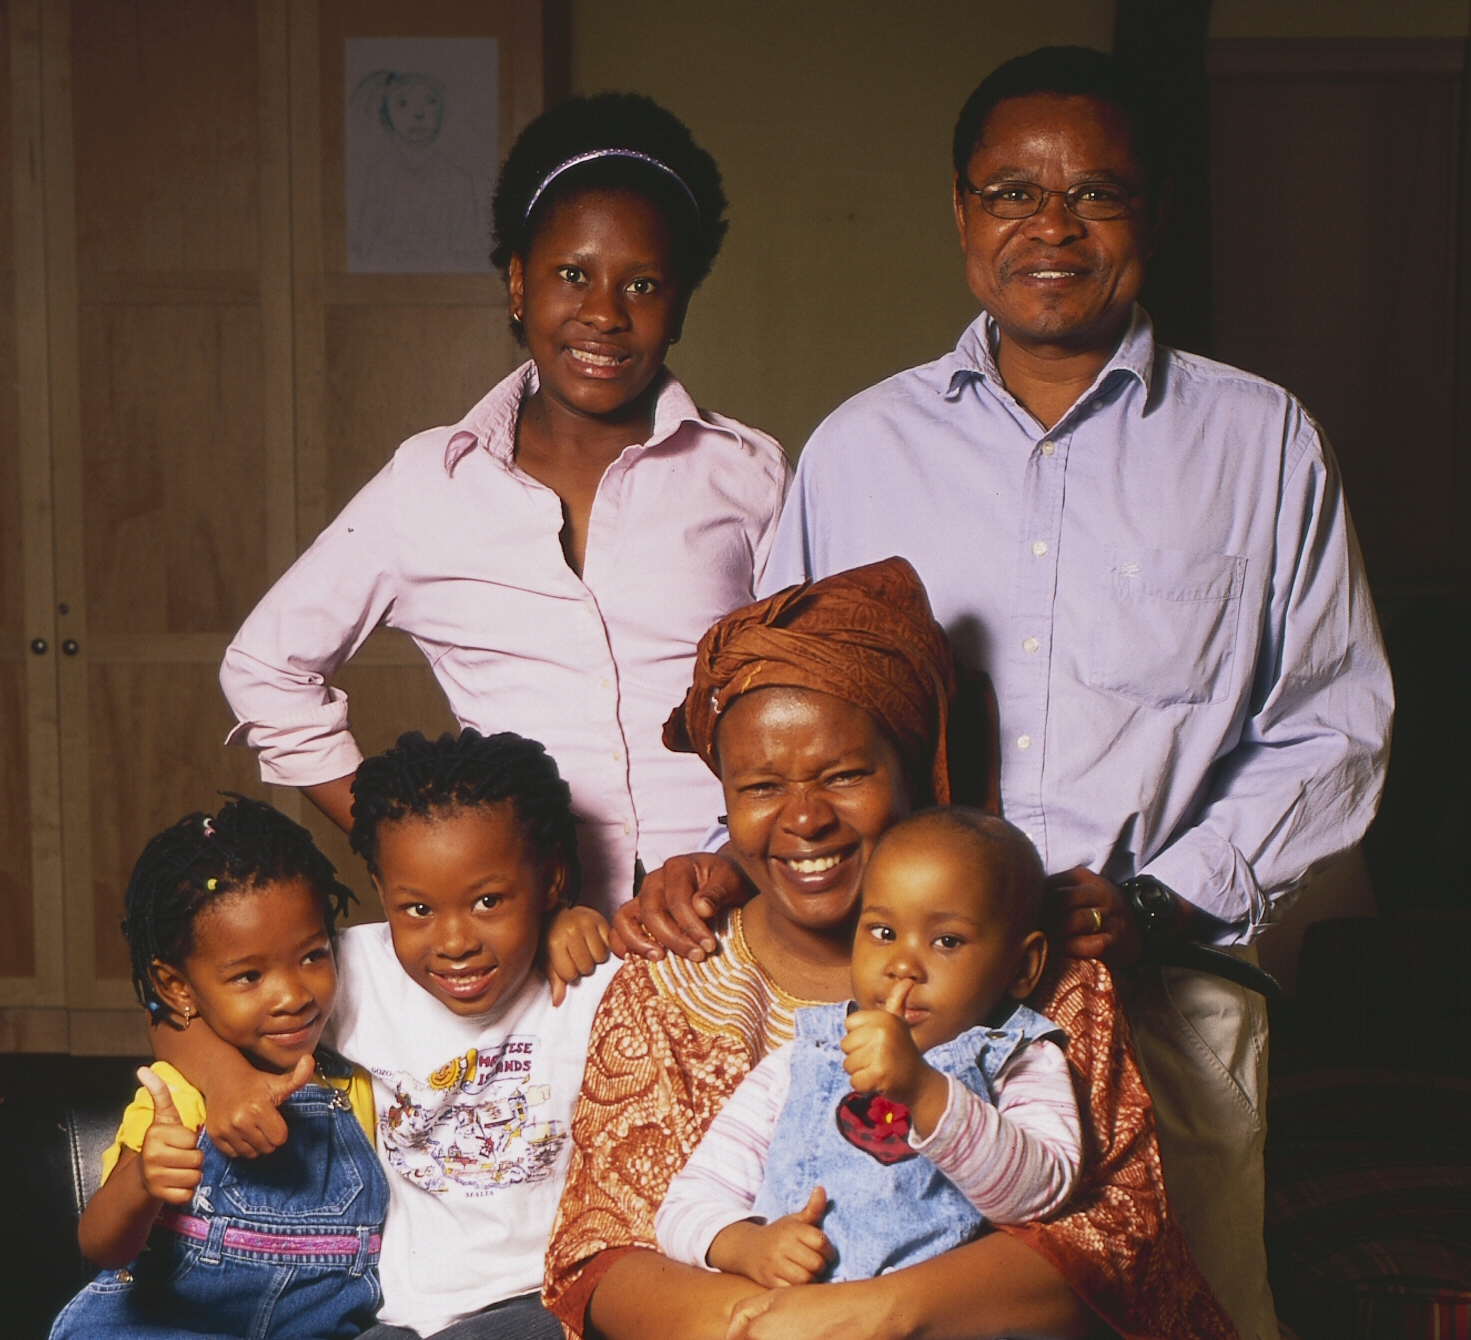 Rati and her family during treatment in Canada.